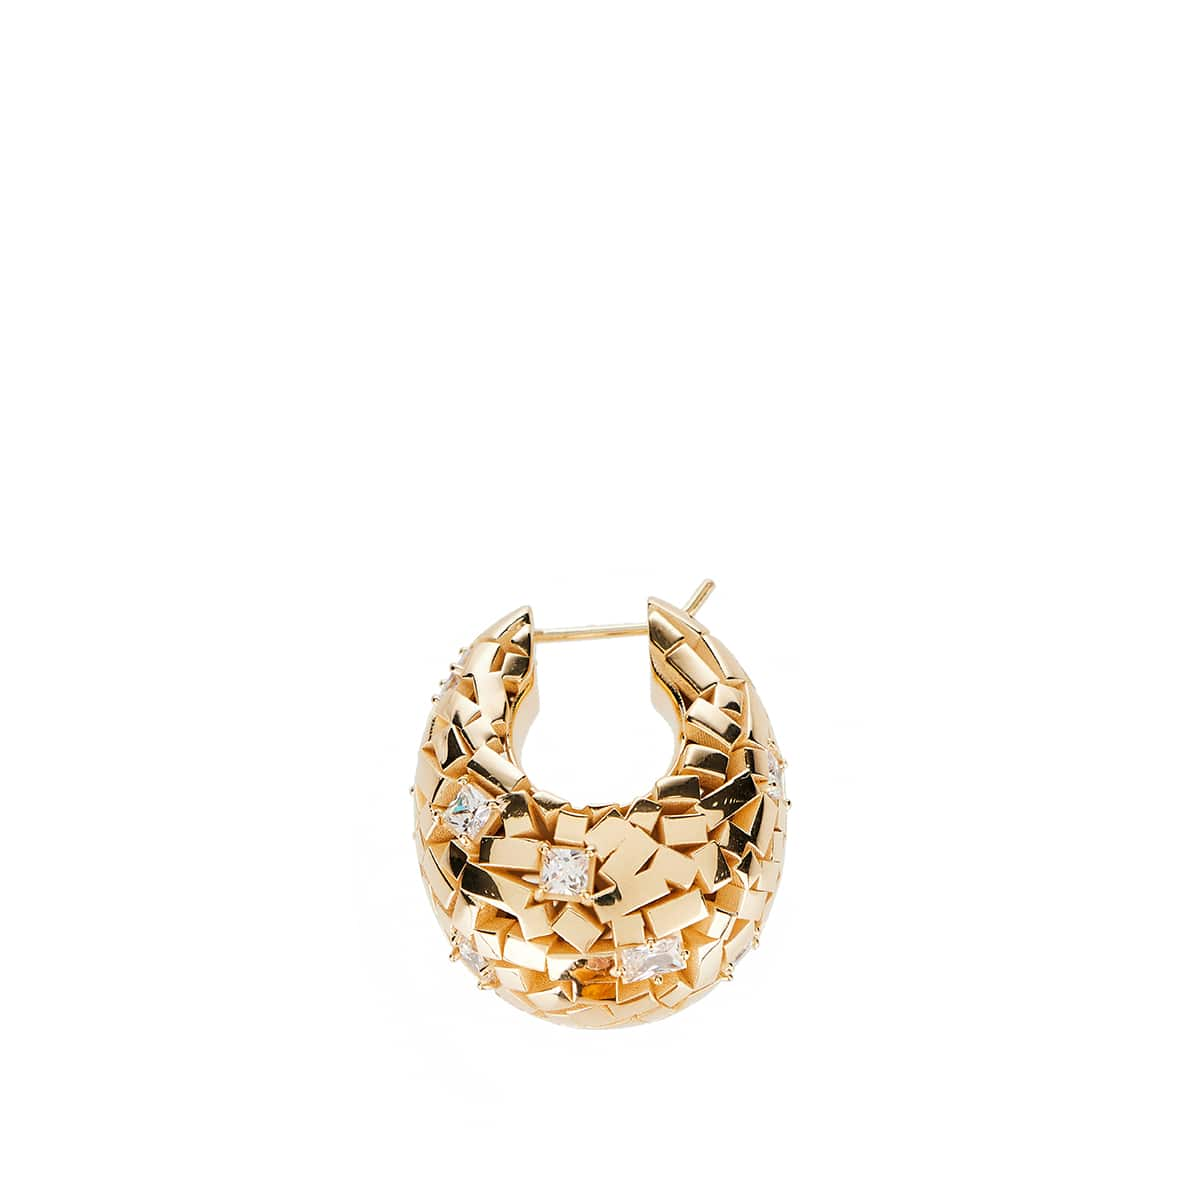 Mosaic-effect gold-plated earrings